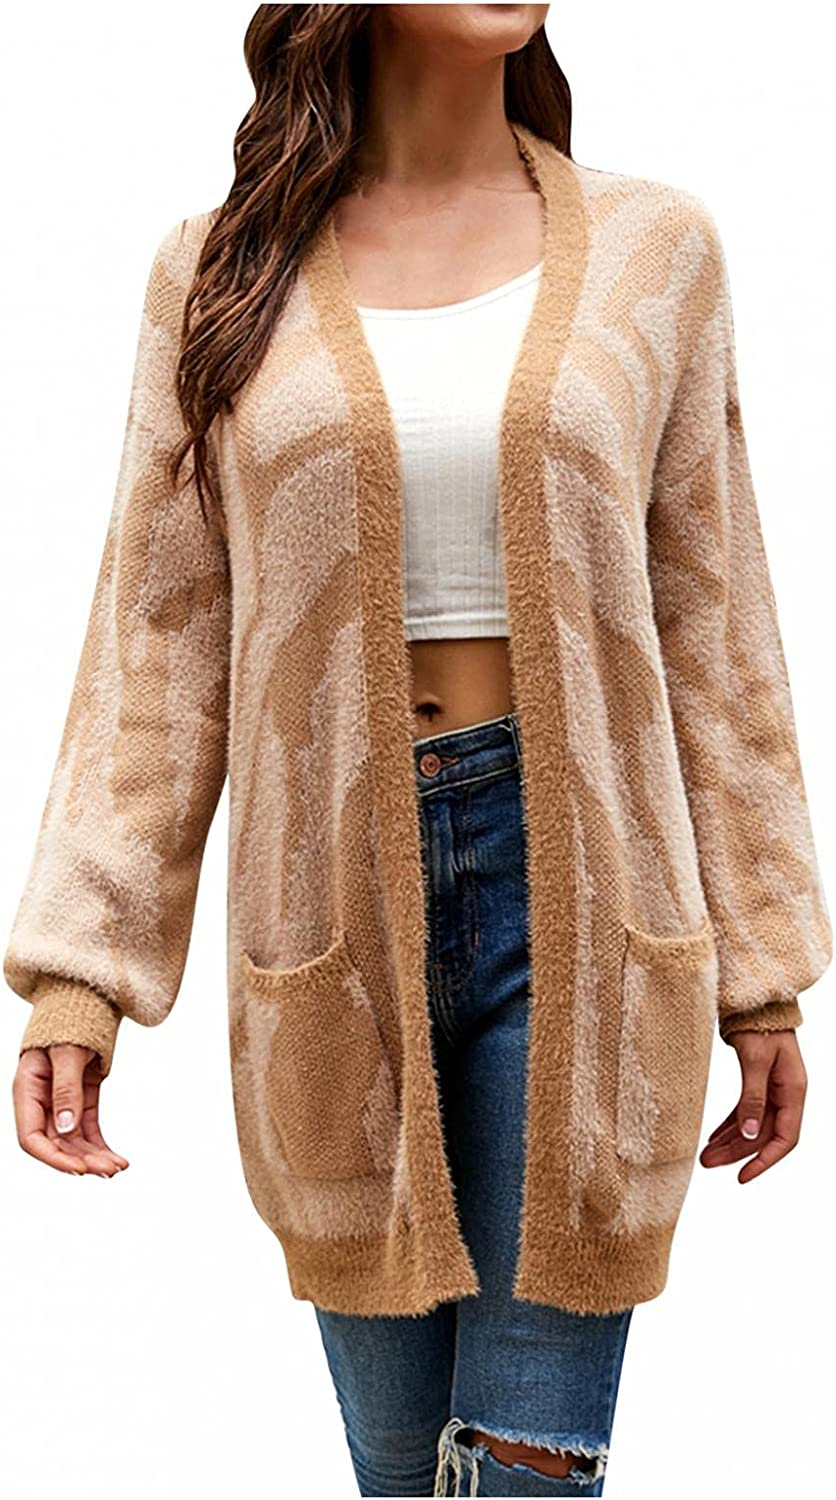 SUIQU Cardigan for Women, 2021 New Fall & Winter Long Sleeve Open Front Leopard Print Knitted Sweater Coat with Pockets